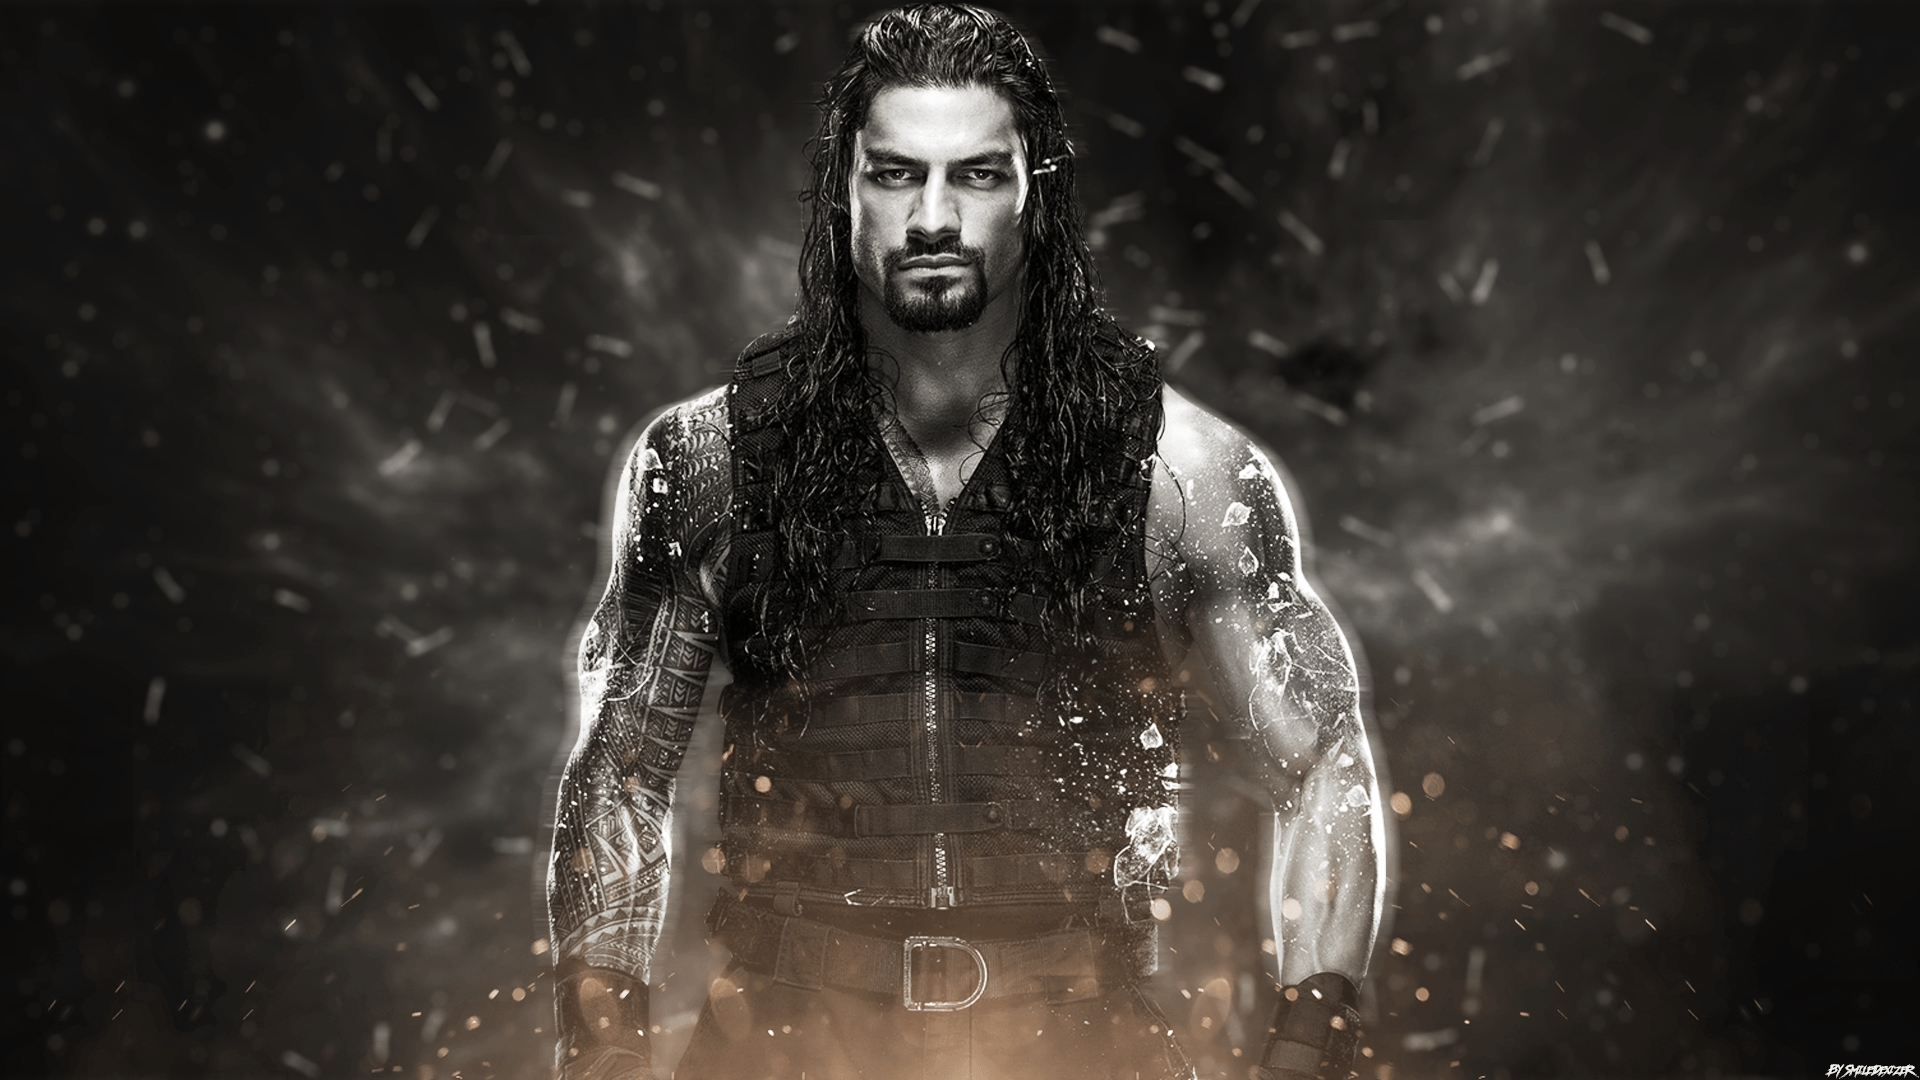 roman reigns full hd wallpaper and background image | 1920x1080 | id